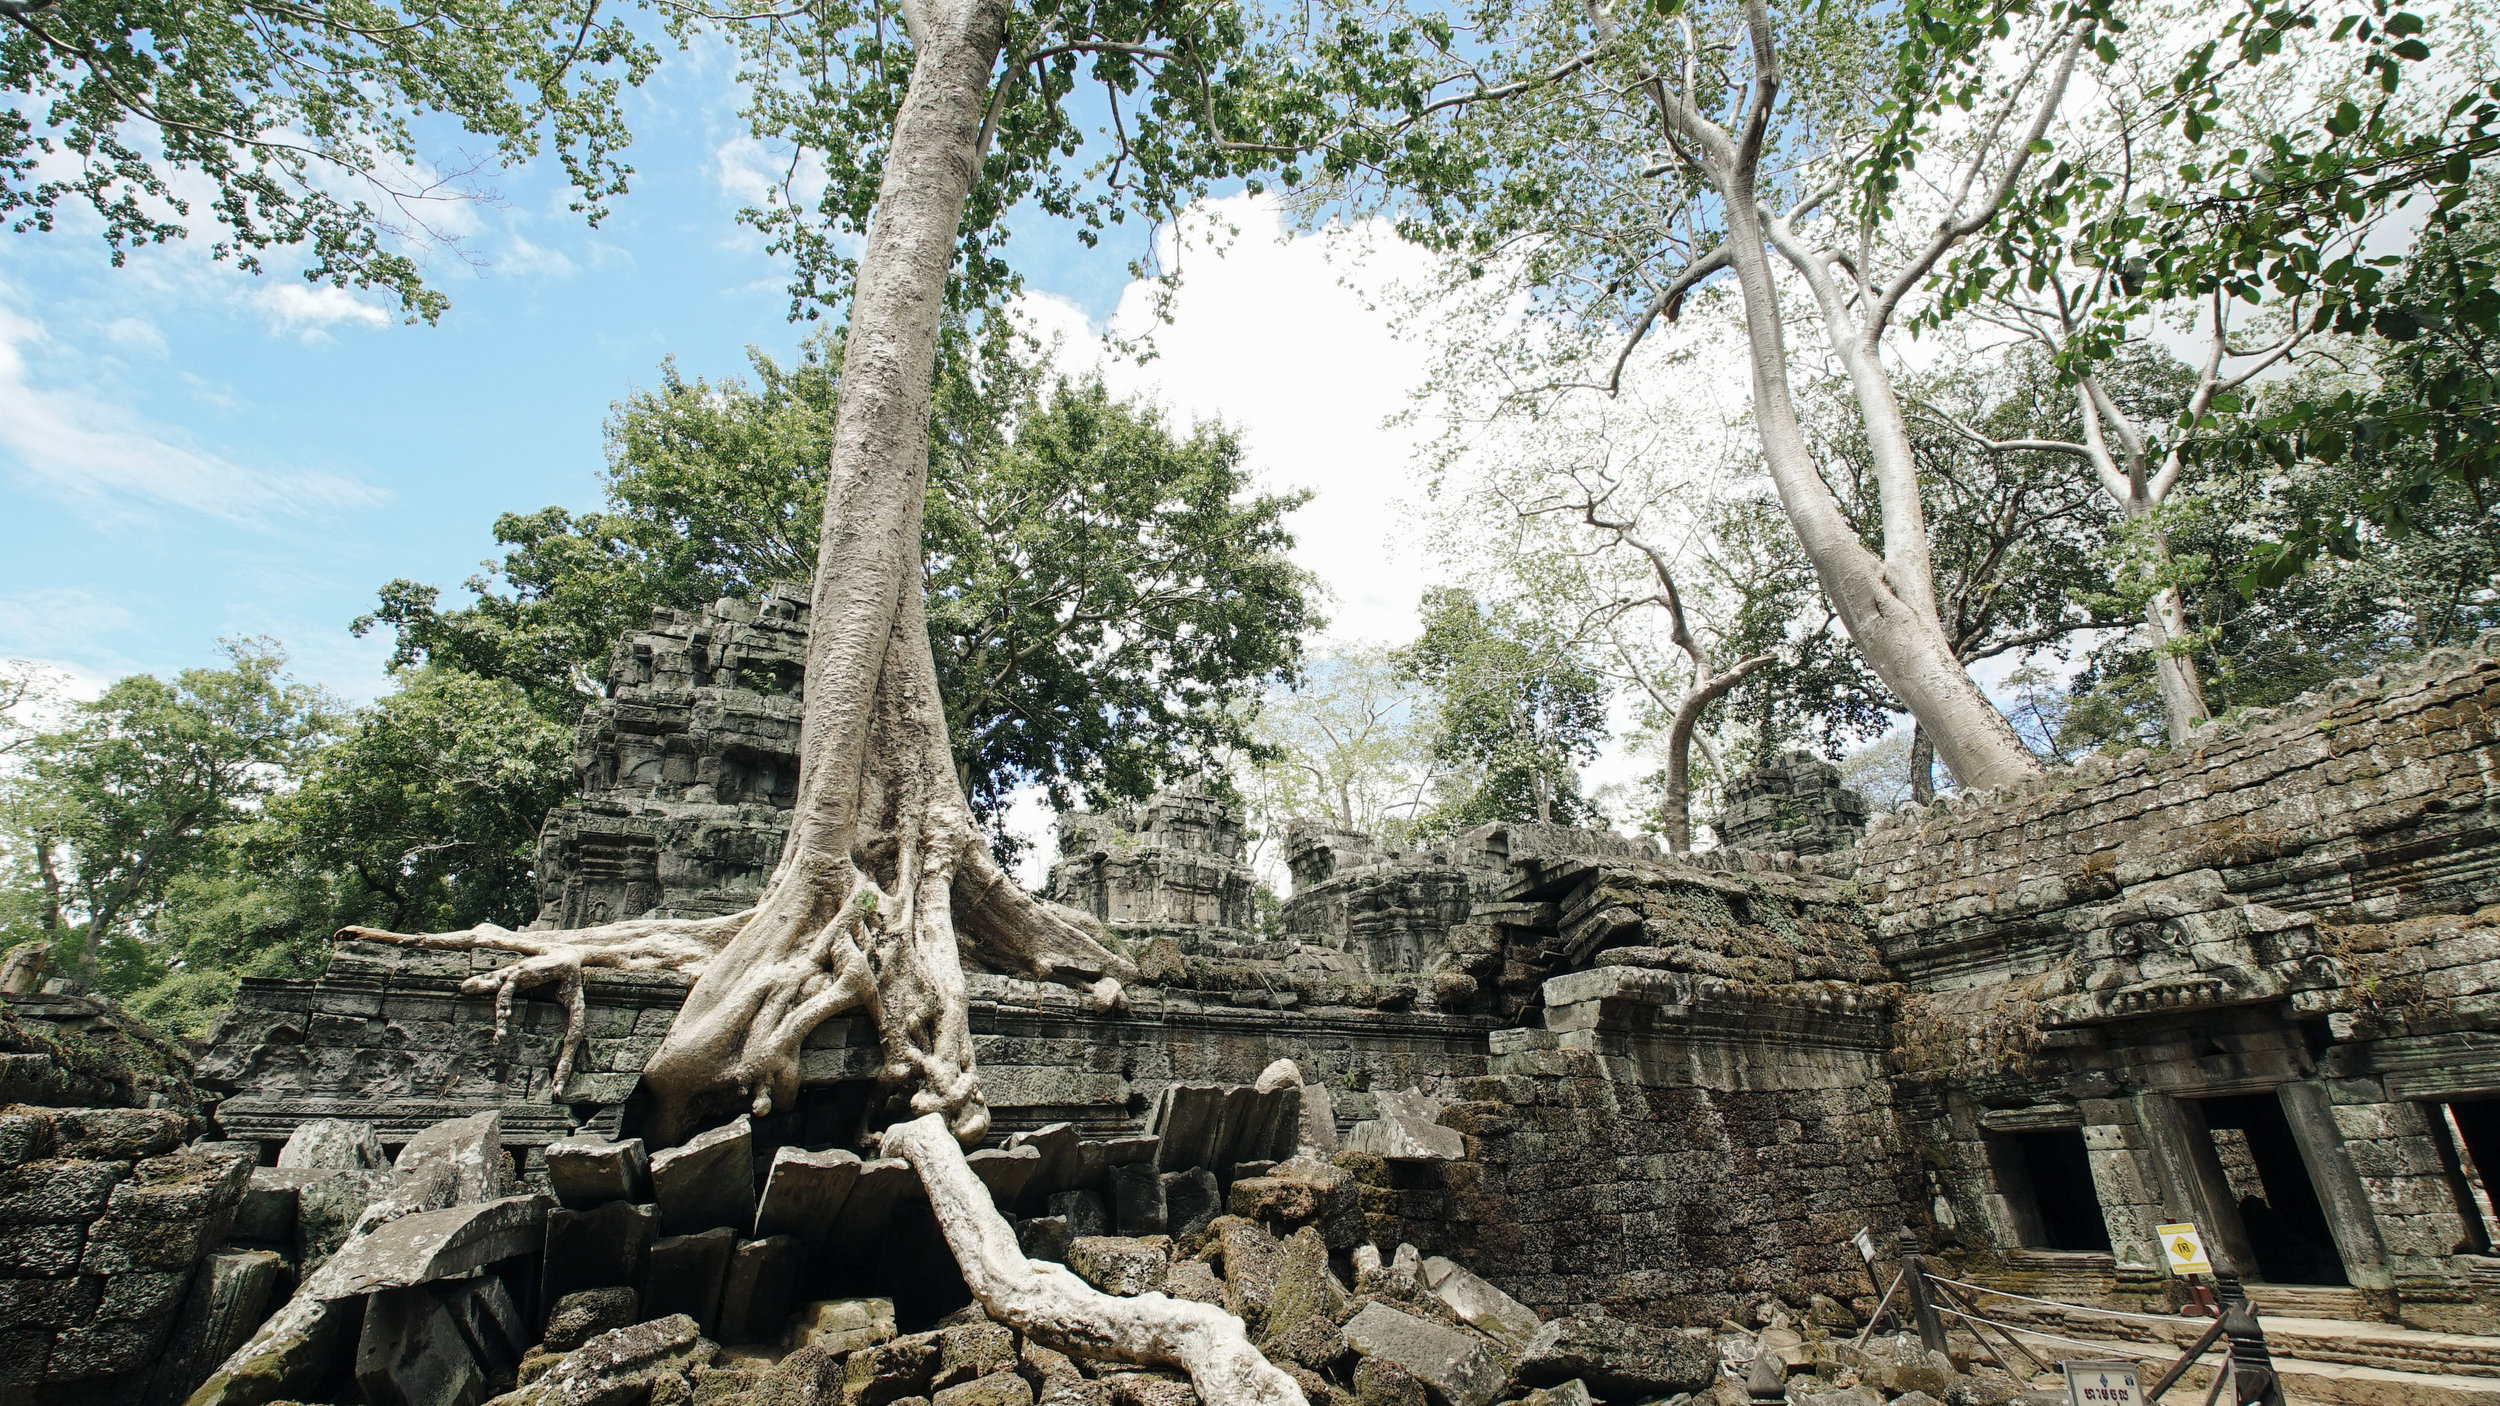 Life reaffirms itself everywhere. Here, trees grow from the ruins of temples in Angkor Wat, Cambodia.